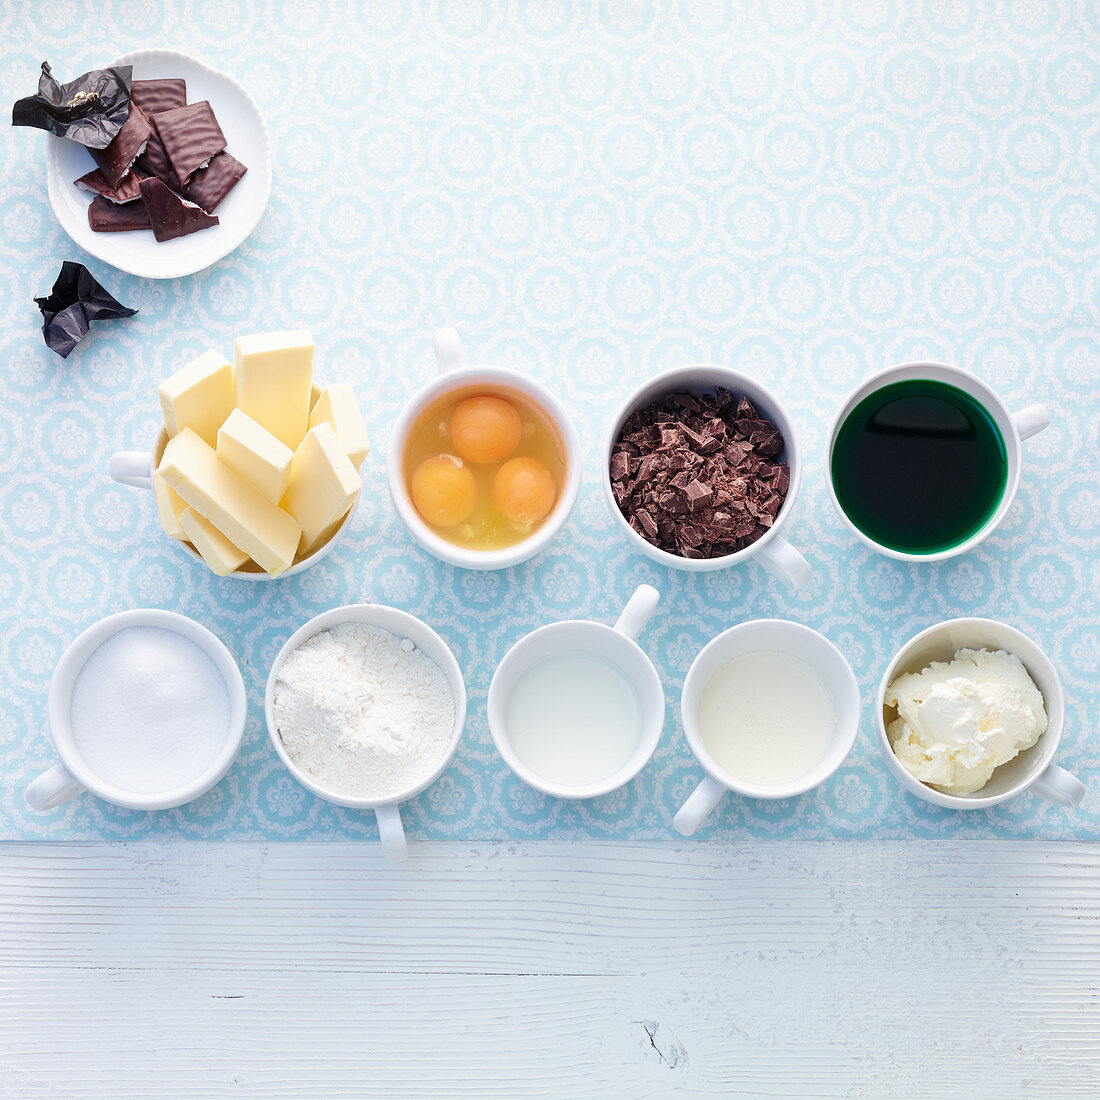 Ingredients for chocolate peppermint tarts